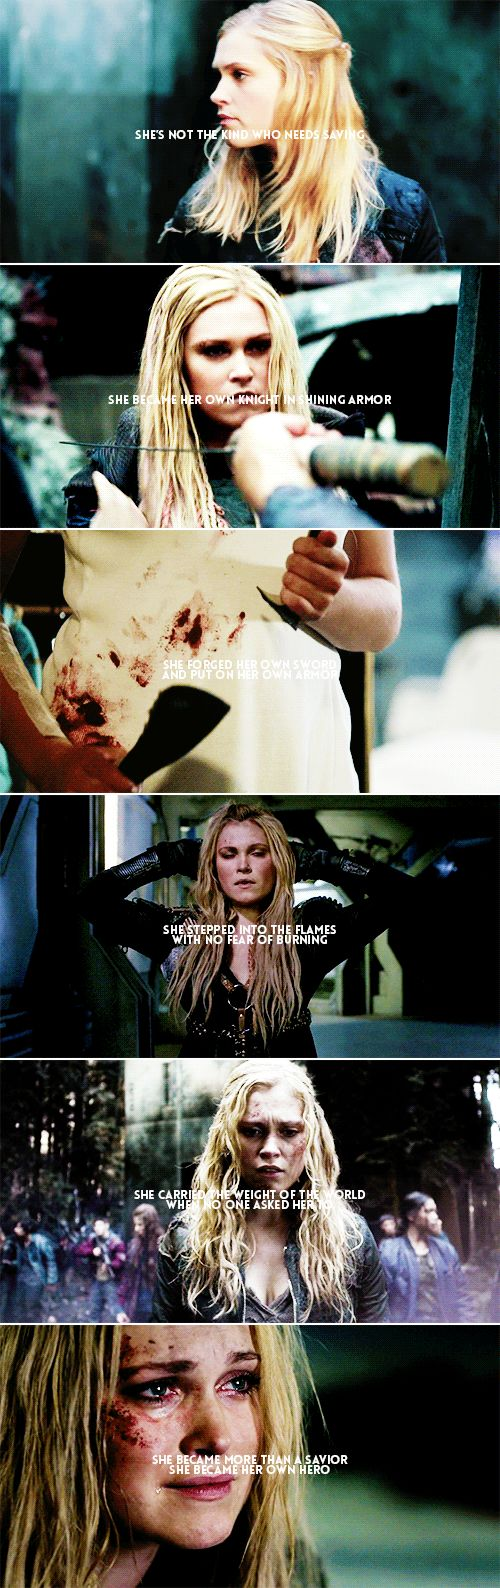 Clarke: — and you know heroes make the best legends // k.s. #the100